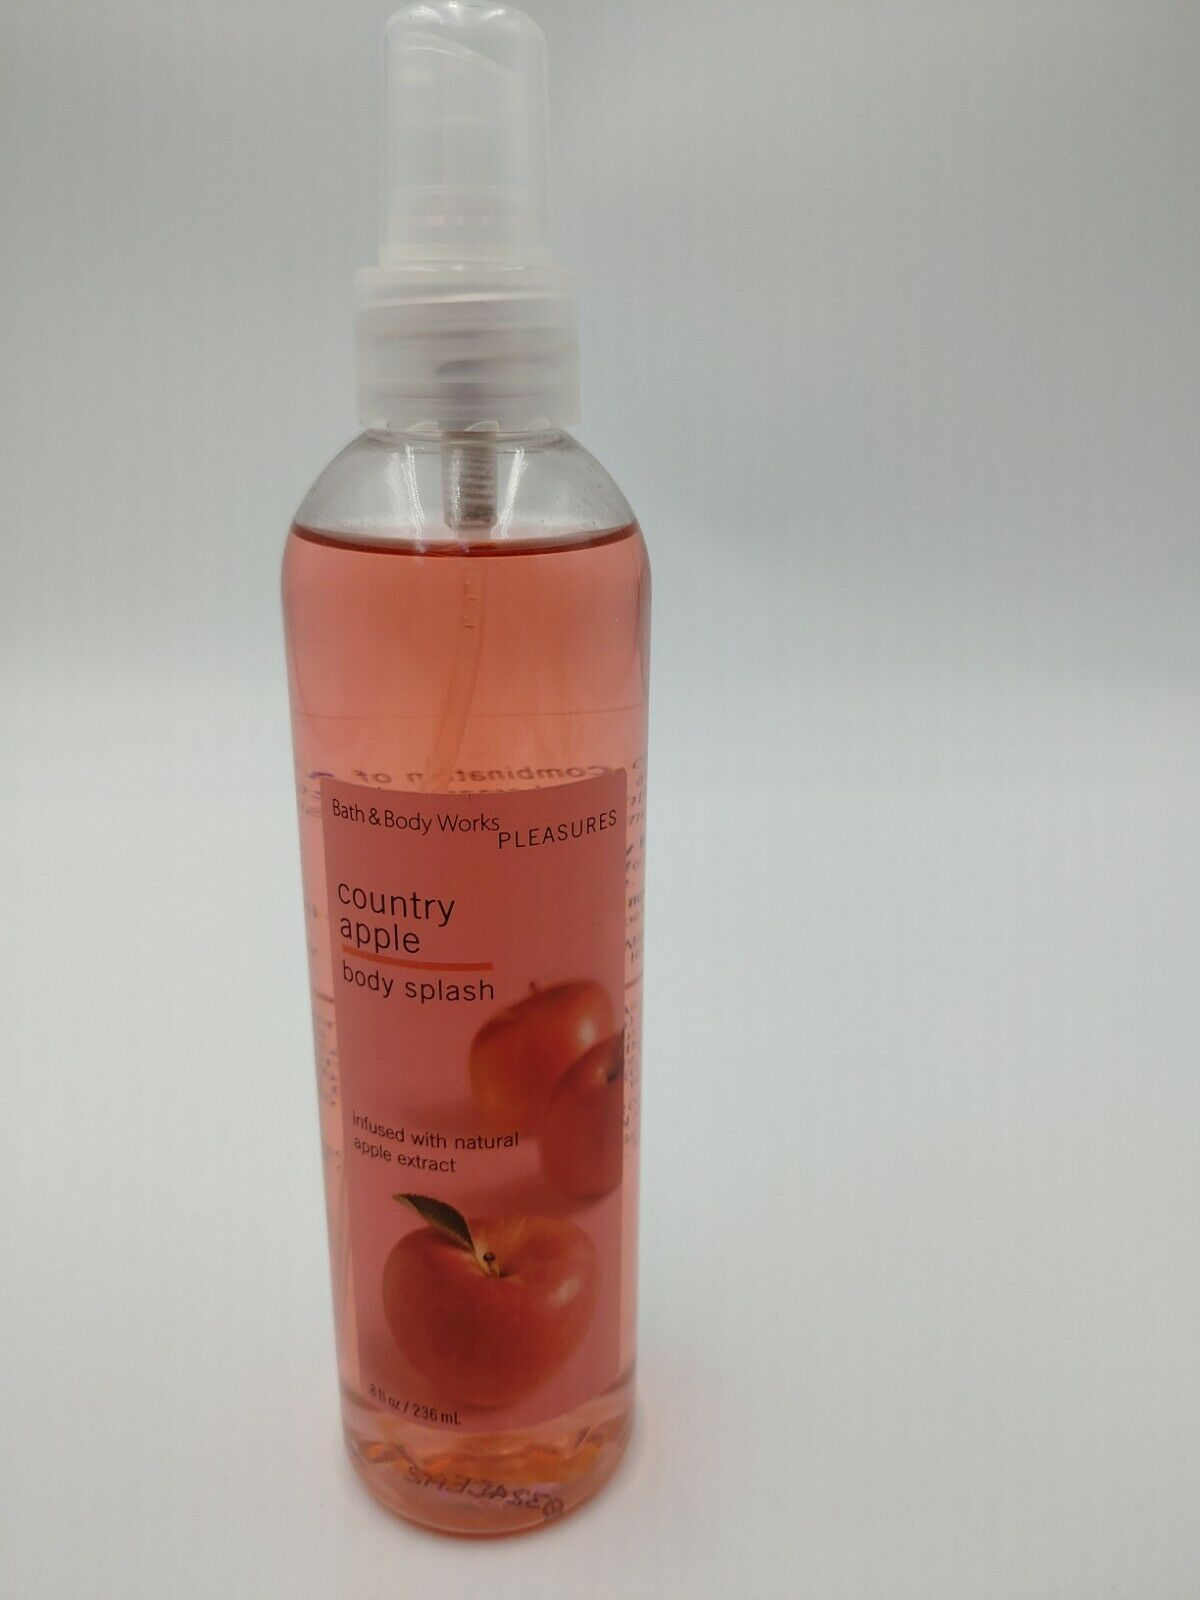 Primary image for Bath and Body Works Pleasures Country Apple Body Splash Spray 8oz Discontinued